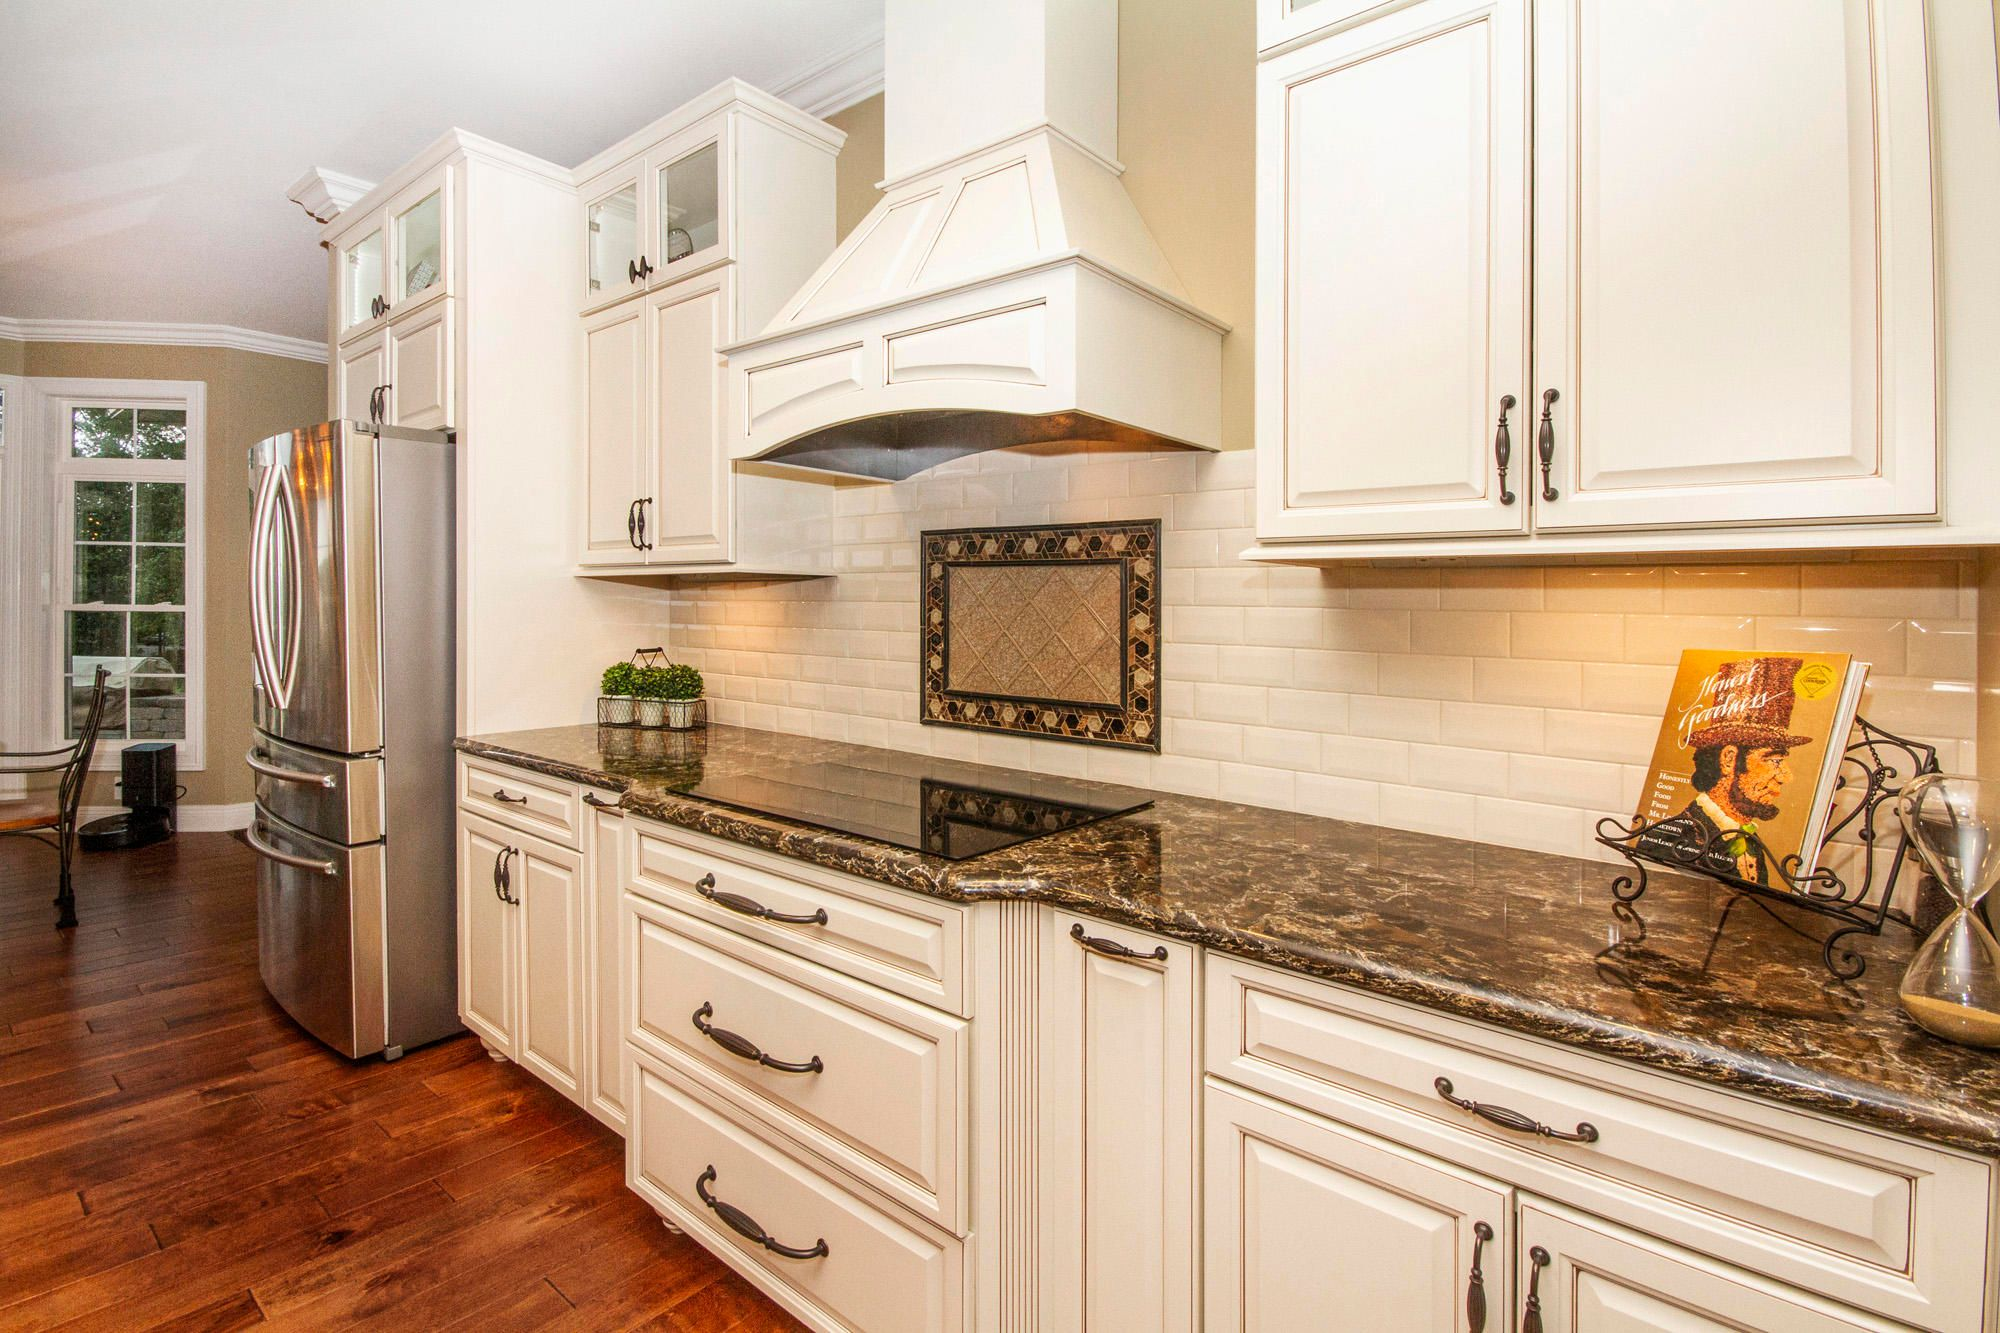 Pretty Mosaic Inset & Ivory Cabinetry!